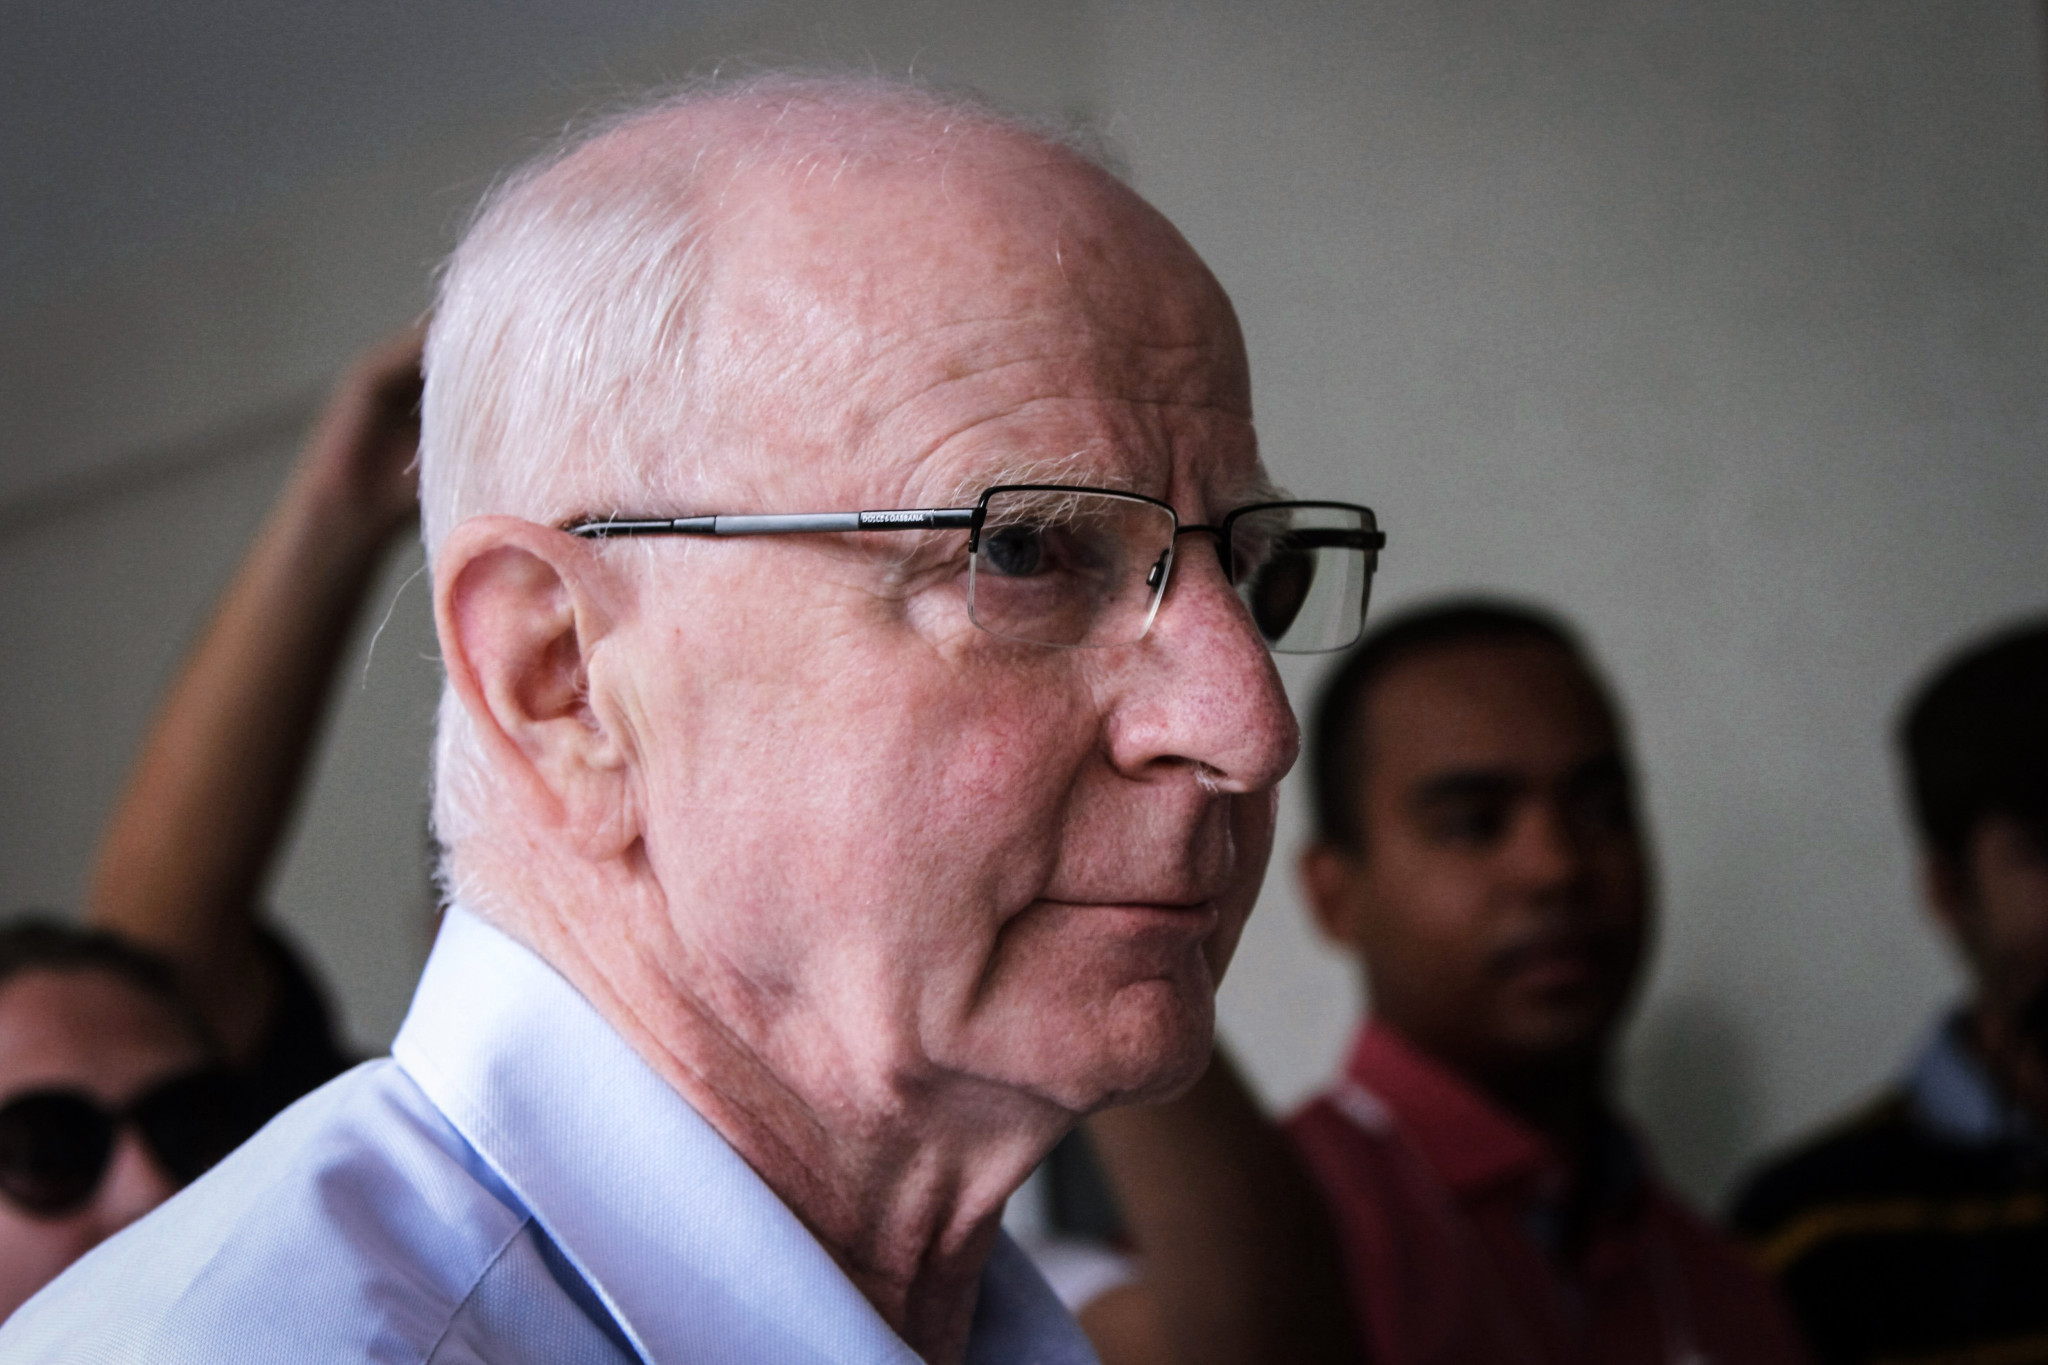 Former OFI and EOC President Pat Hickey was arrested at Rio 2016 for alleged ticket scalping ©Getty Images